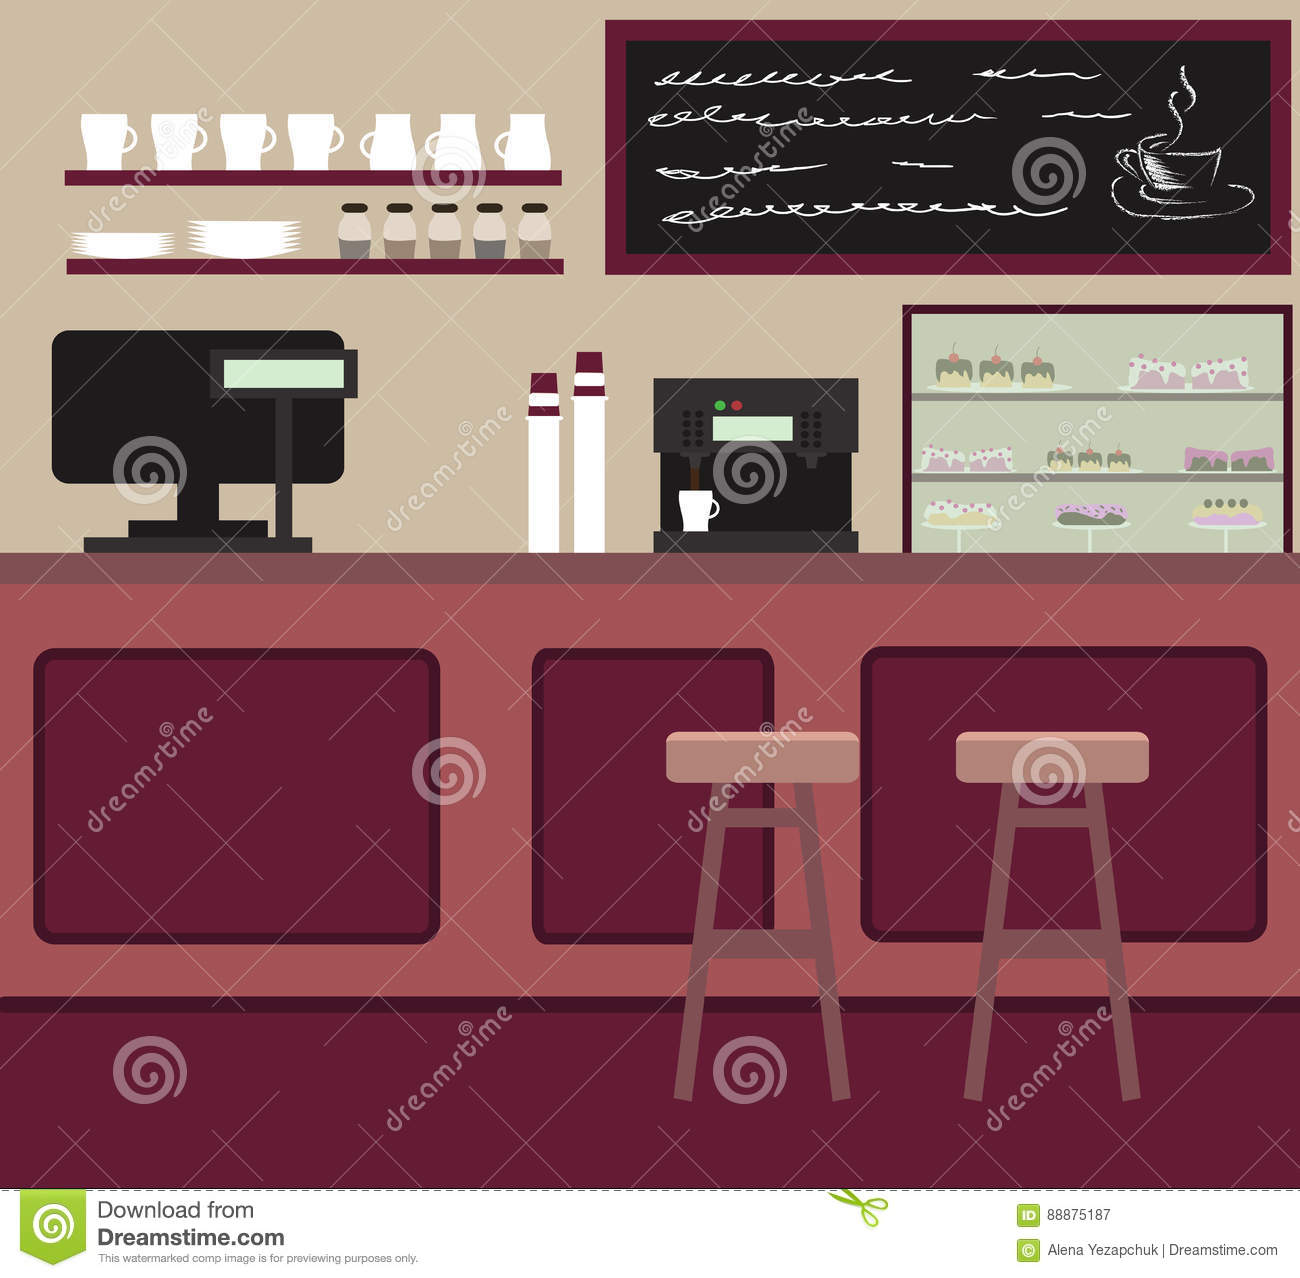 the cafe interior design. coffee shop with counter bar. stock